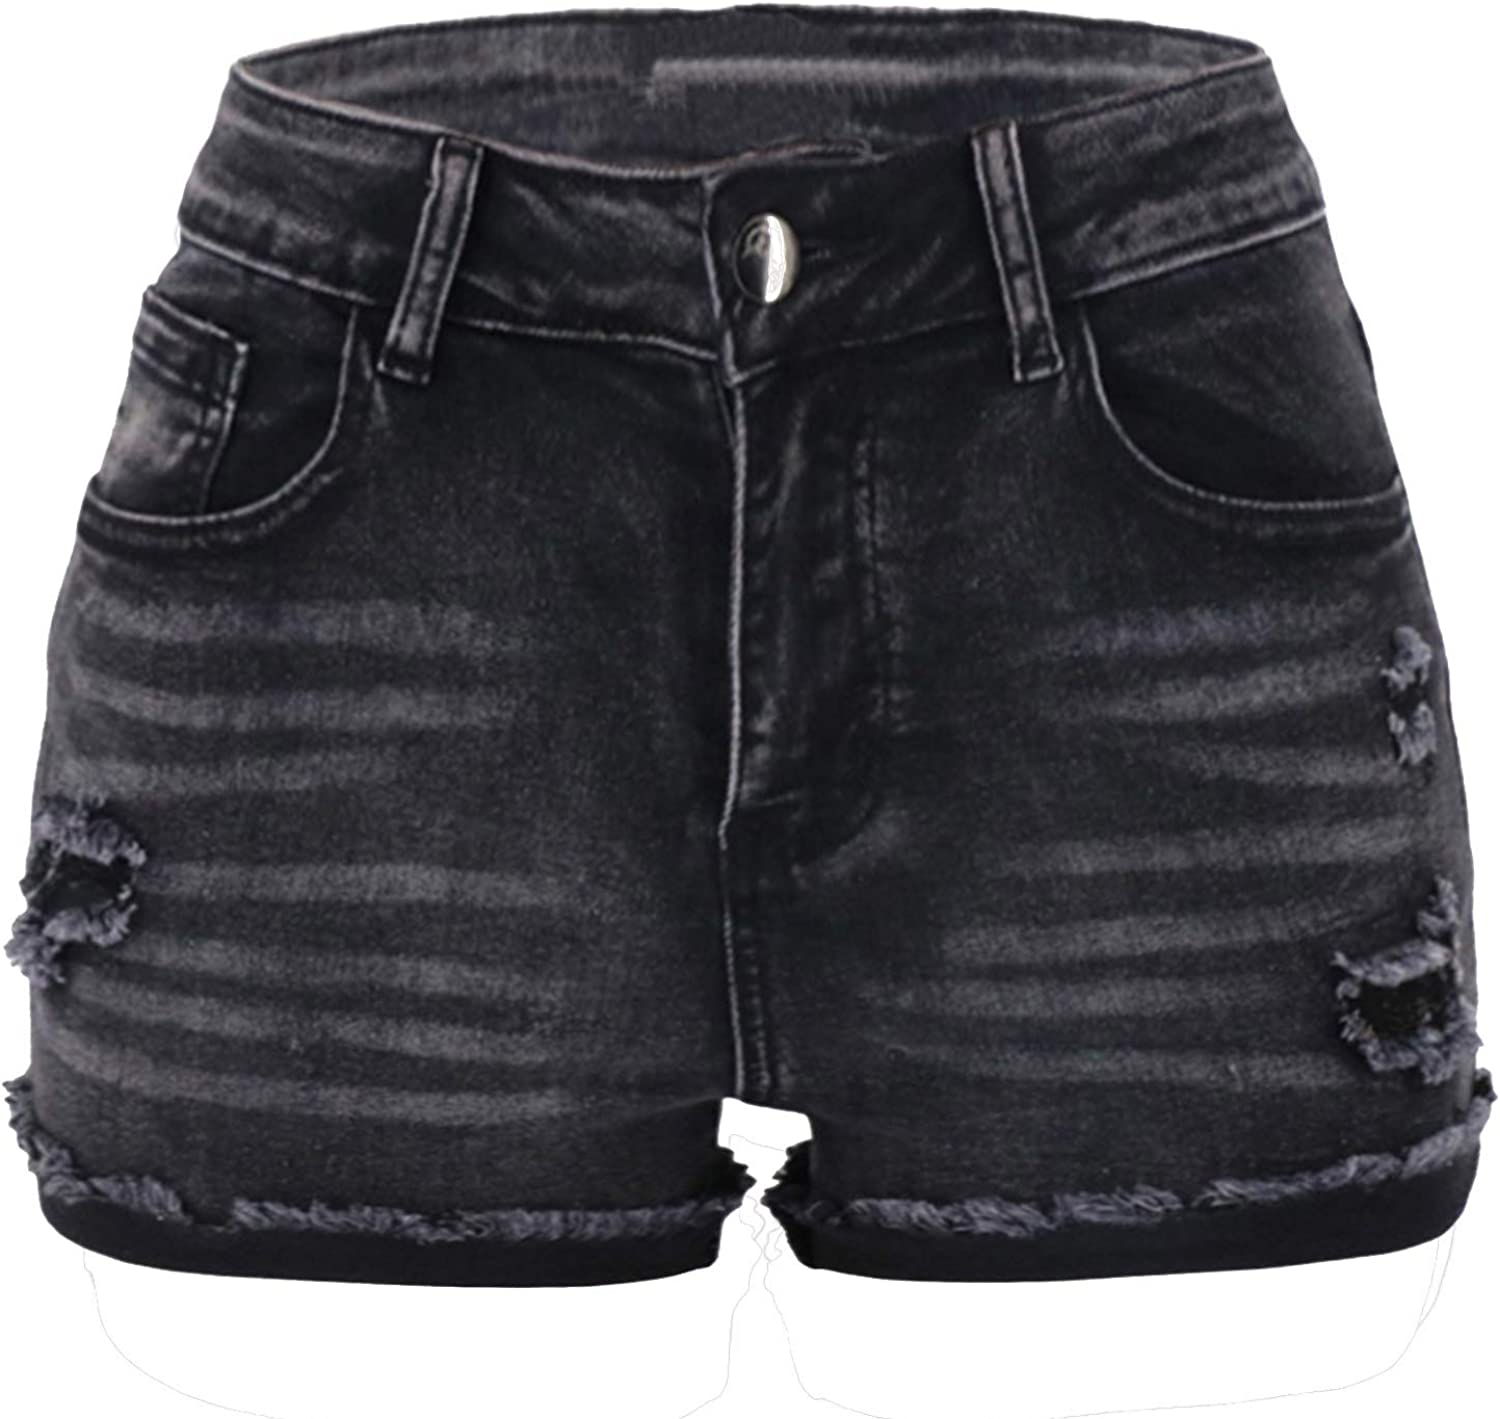 Atditama Women's Mid-Rise Ripped Denim Shorts Stretch Roll-up Leg Frayed Skinny Casual Summer Jeans